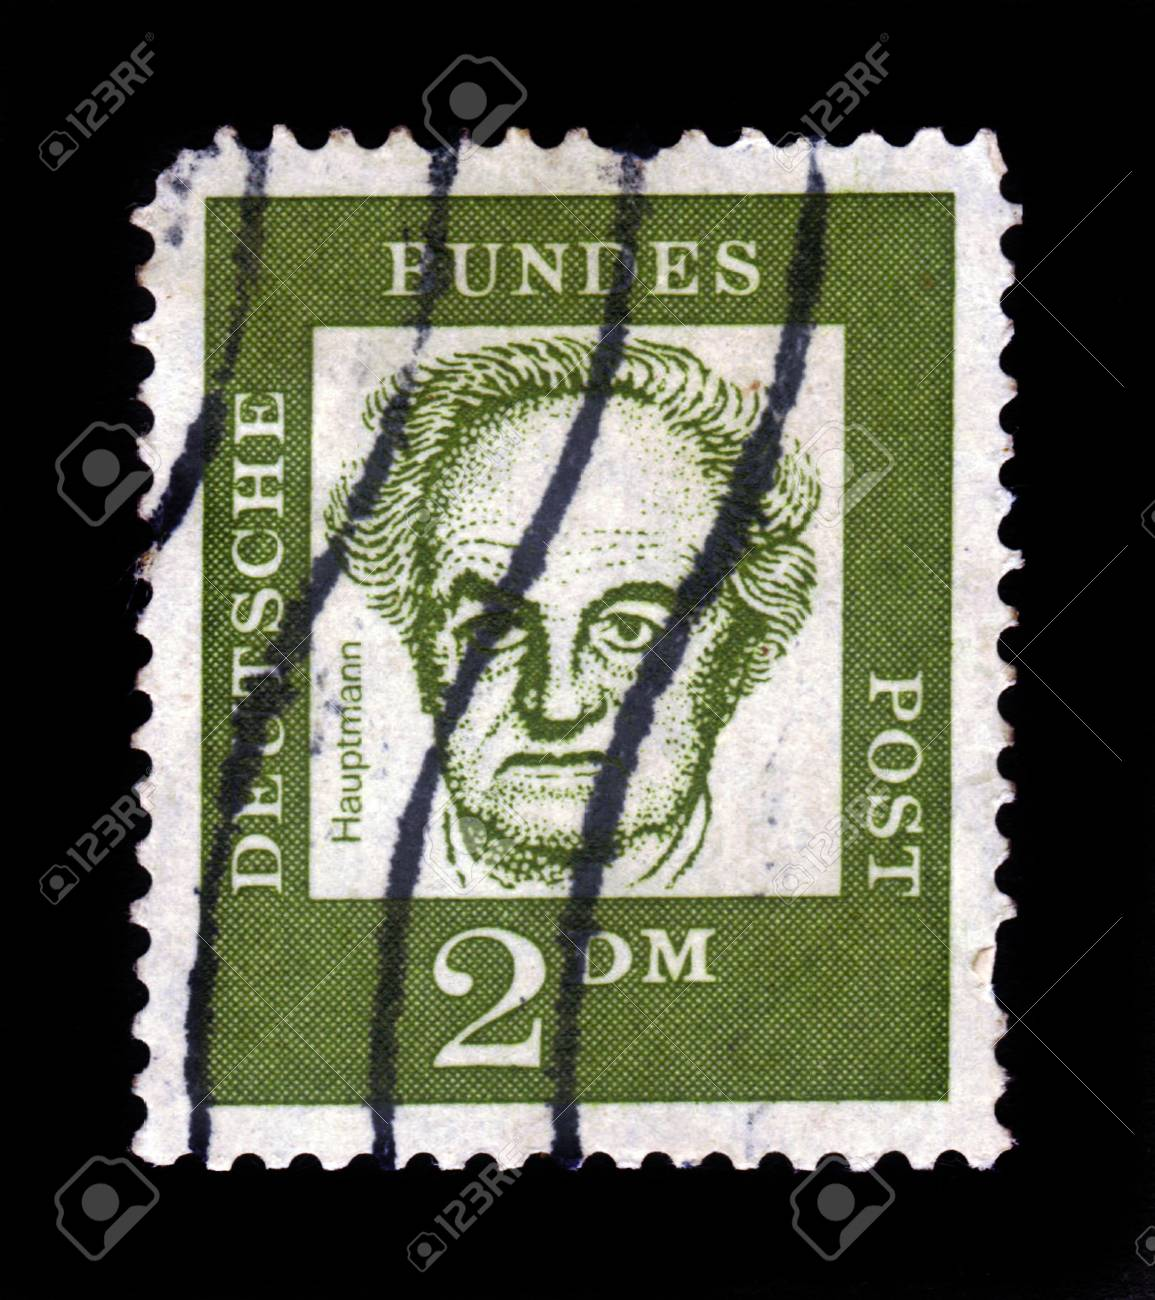 GERMANY - CIRCA 1961: A stamp printed in Germany  showing Gerhart Hauptmann - German dramatist and novelist who received the Nobel Prize in Literature in 1912, series famous germans, circa 1961. Stock Photo - 17491264